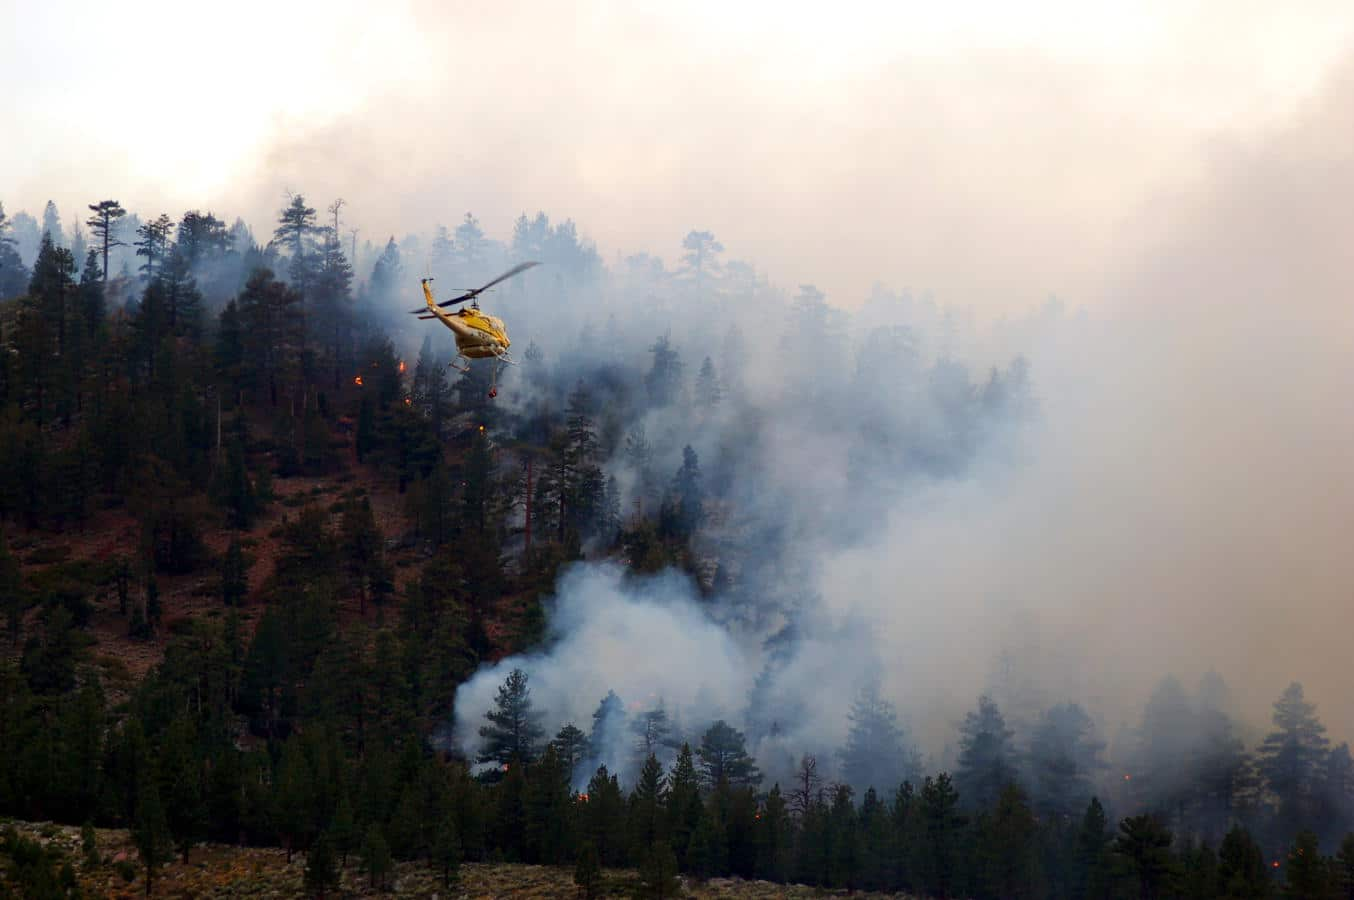 A helicopter flies in to fight a forest fire.